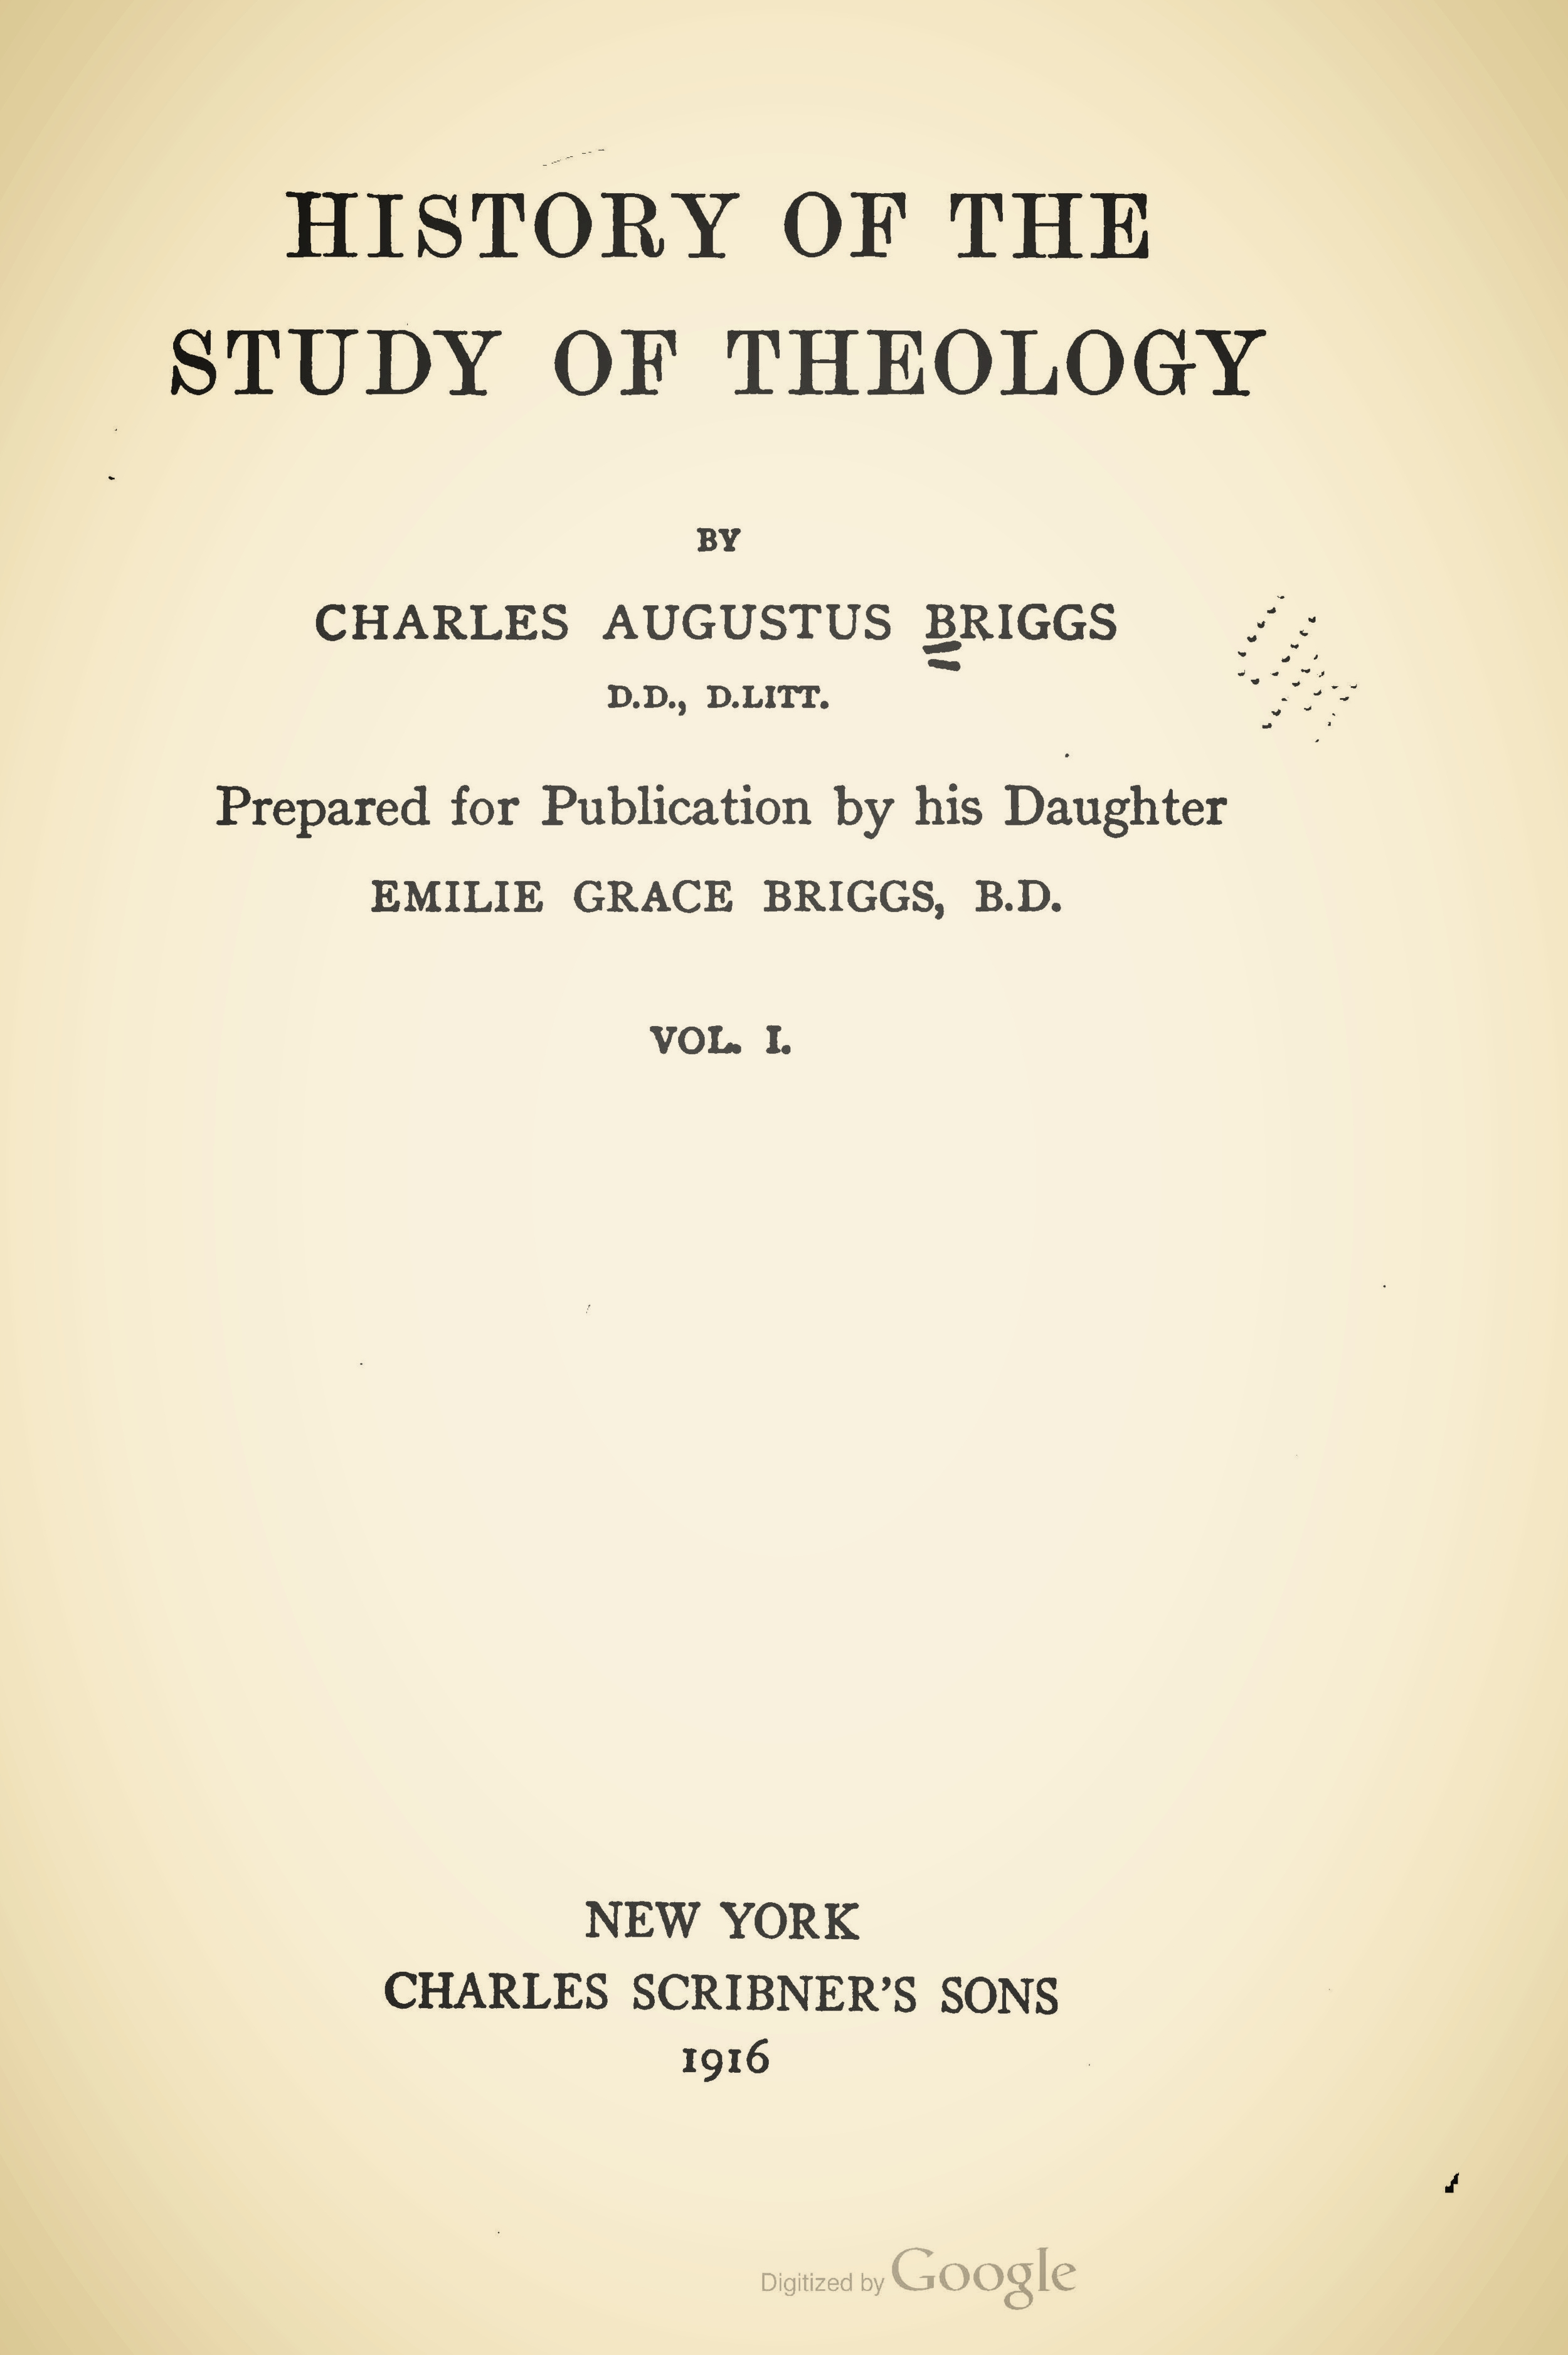 Briggs, Charles Augustus, History of the Study of Theology Vol 1 Title Page.jpg